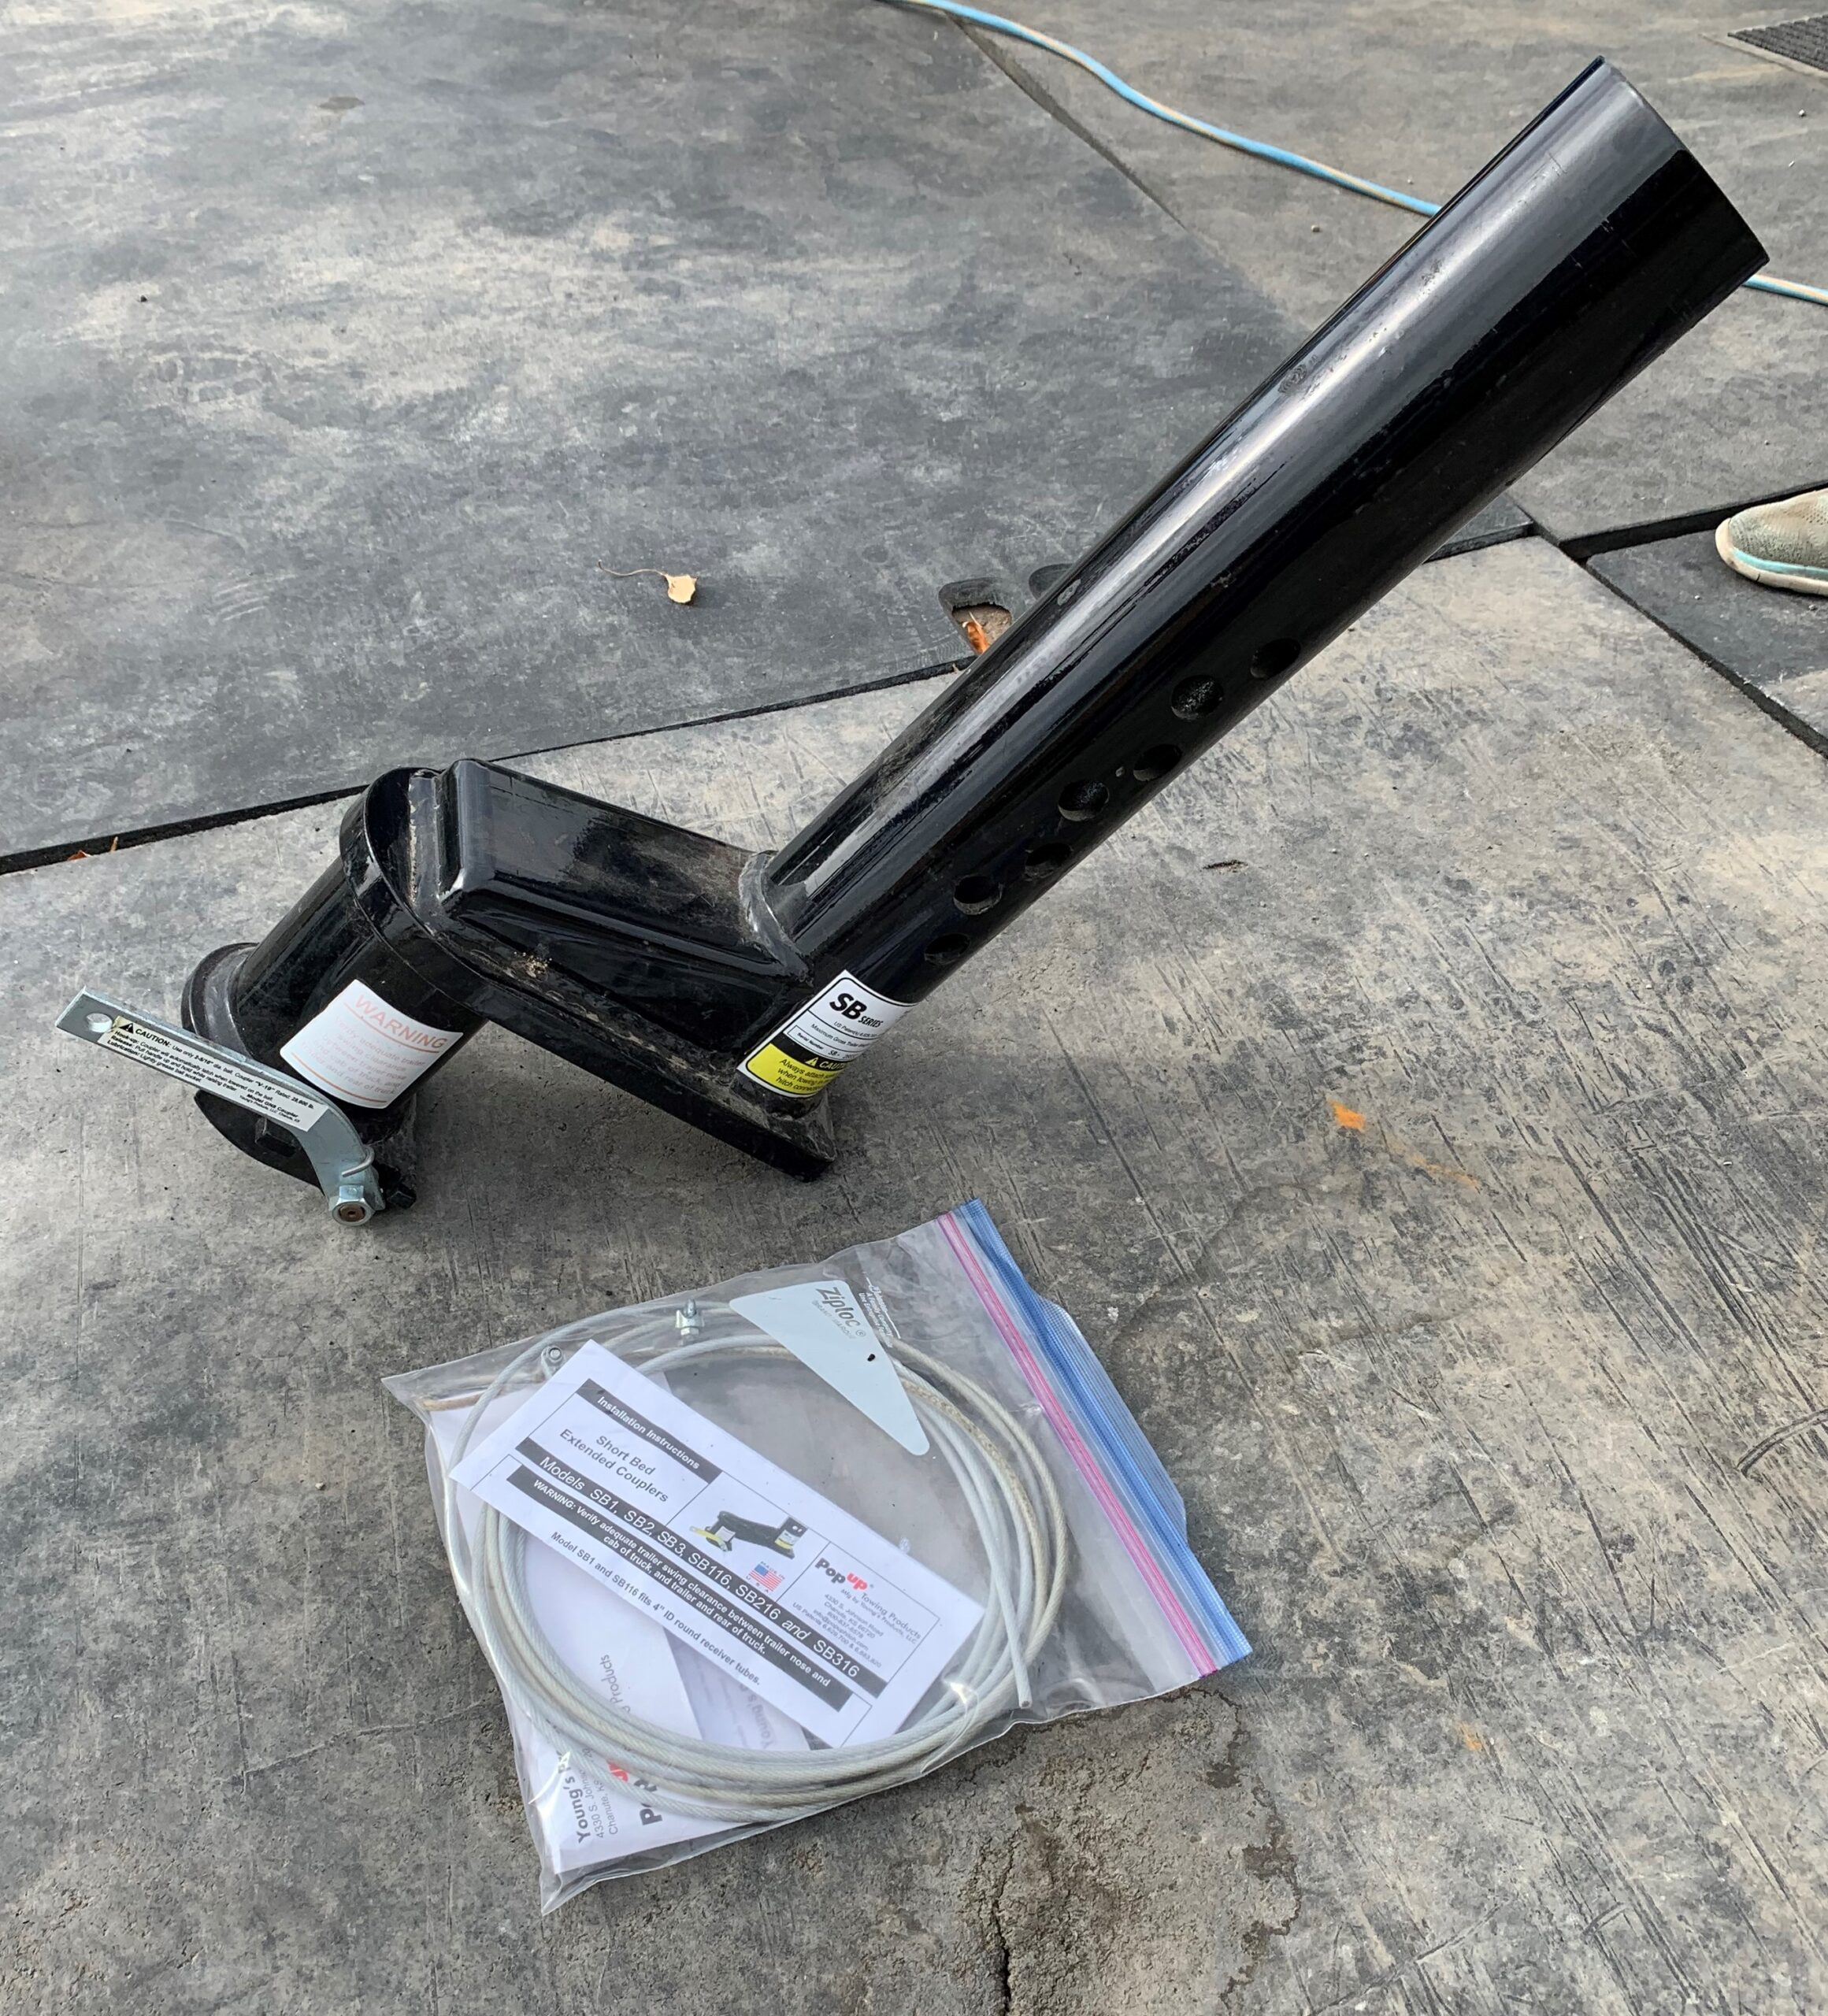 9″ Extend a Hitch w/ Quick Connect Lever and Cable